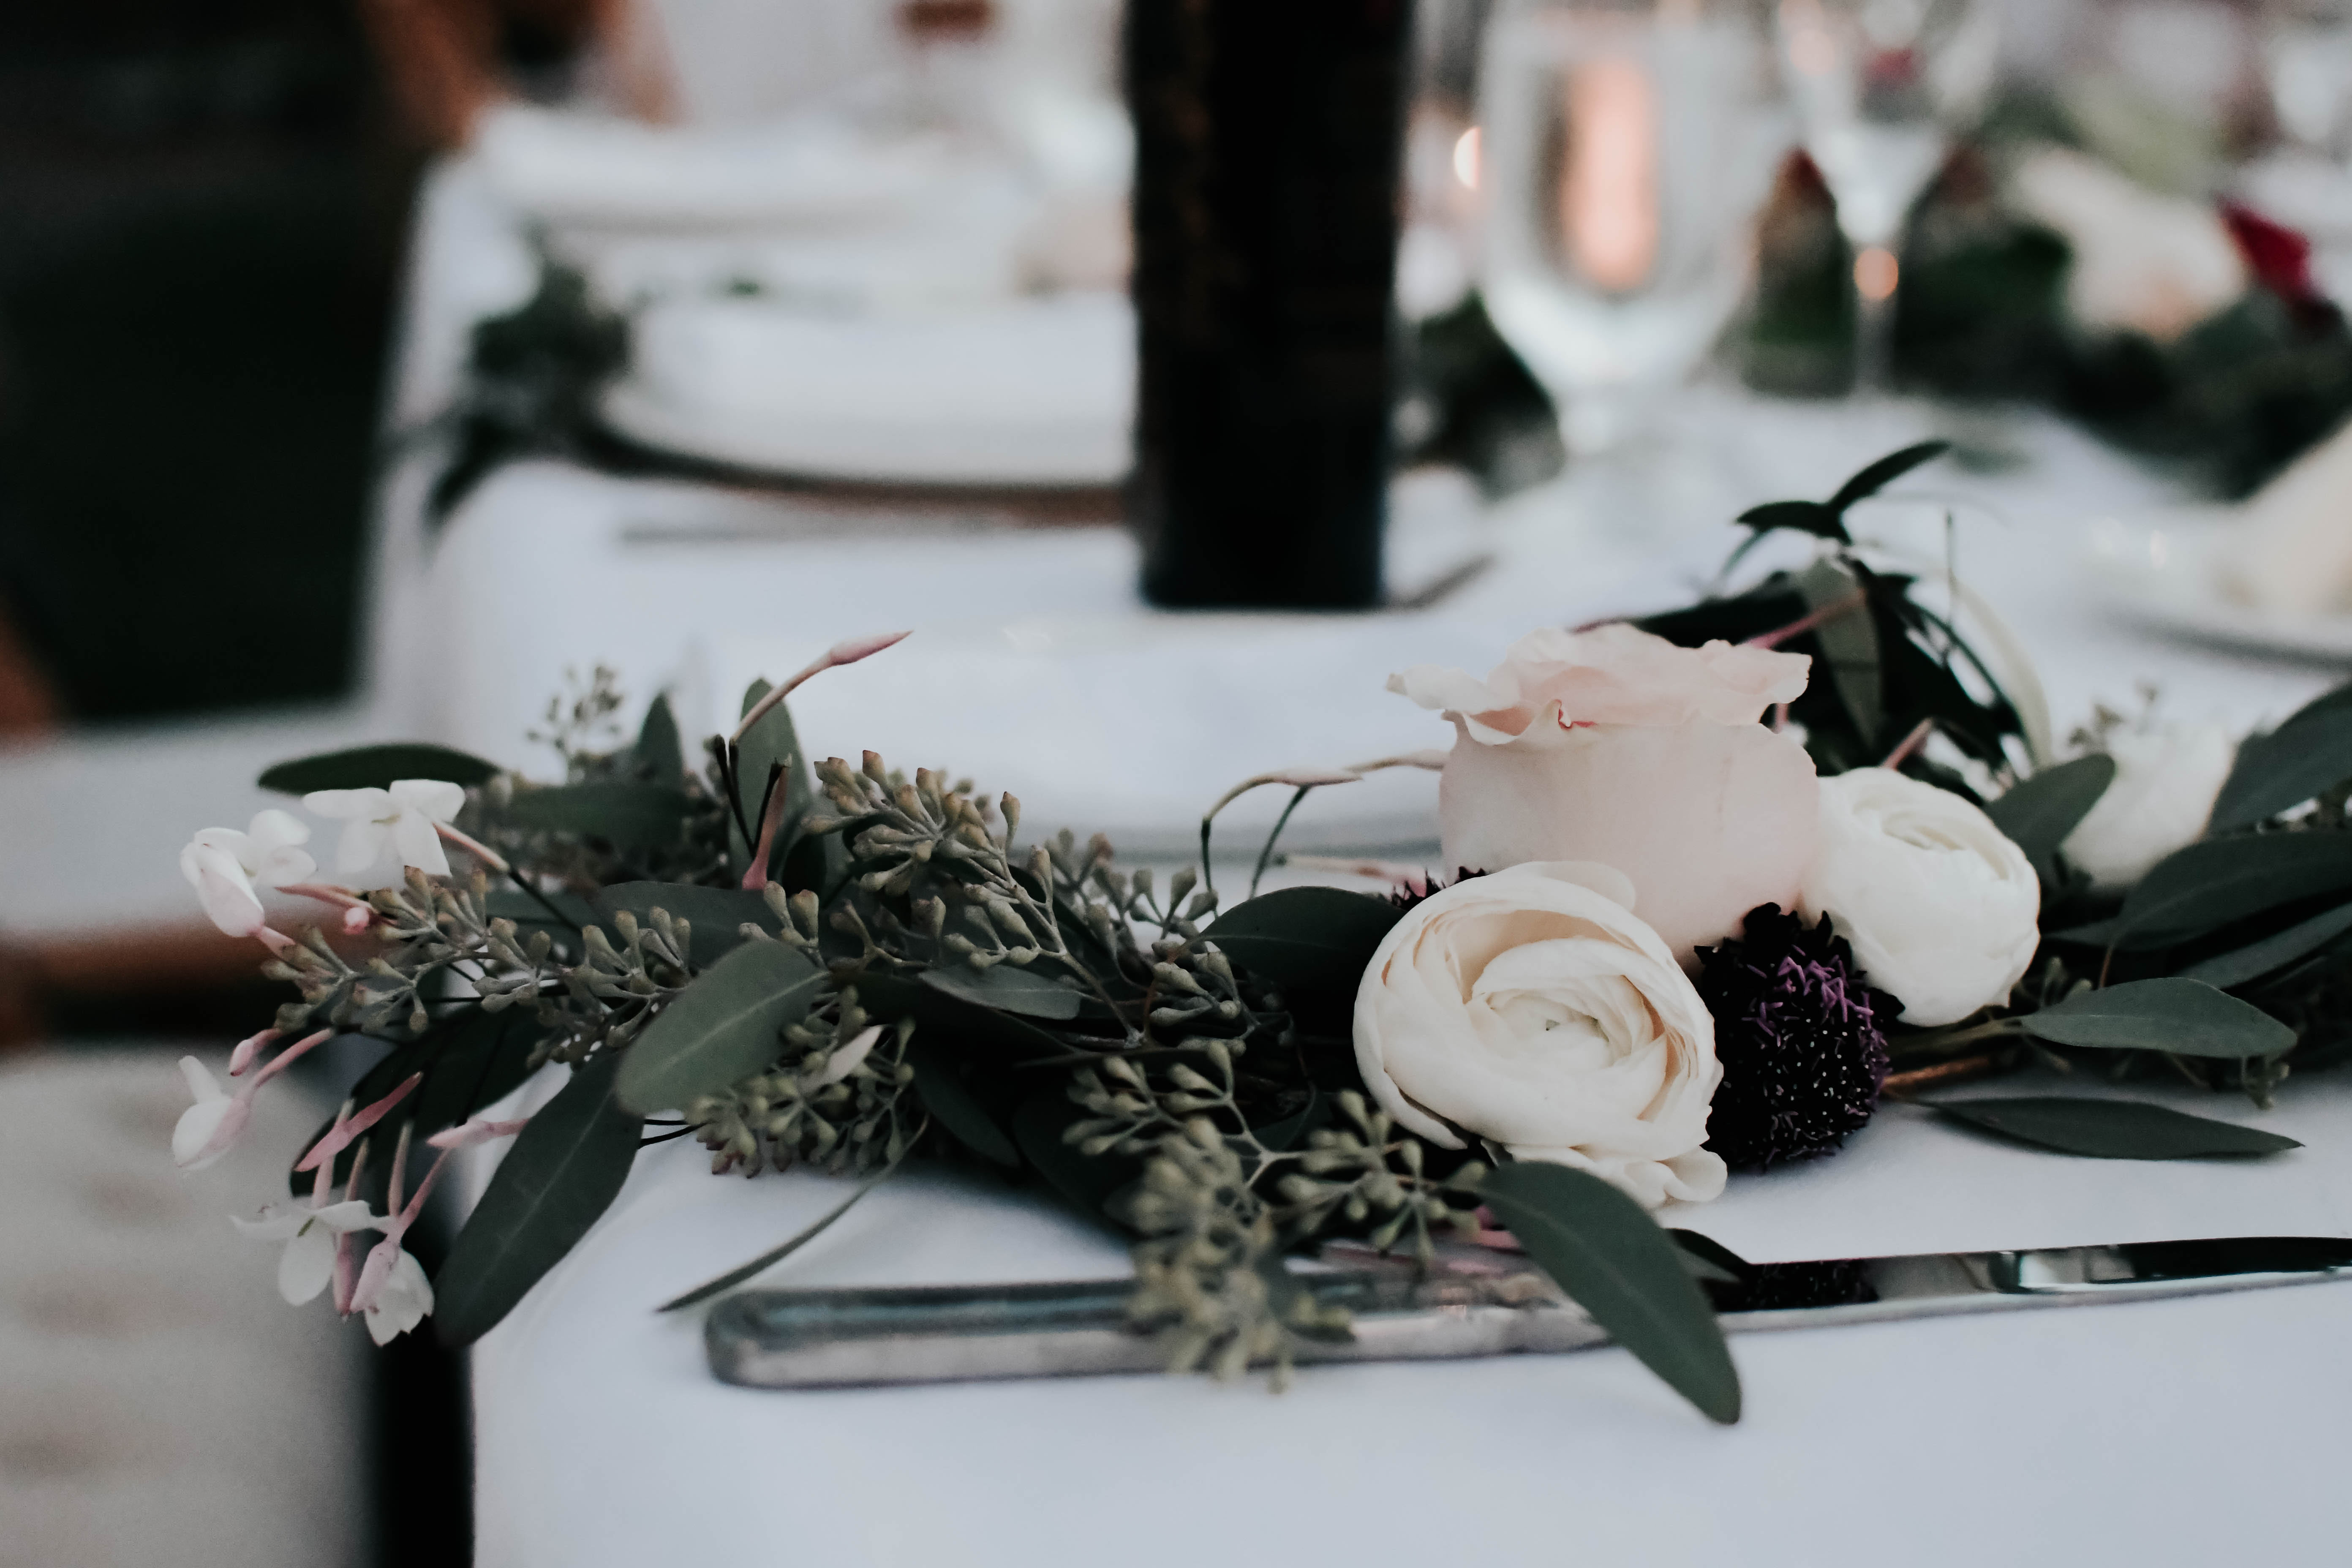 Close-up of flowers on table decor.